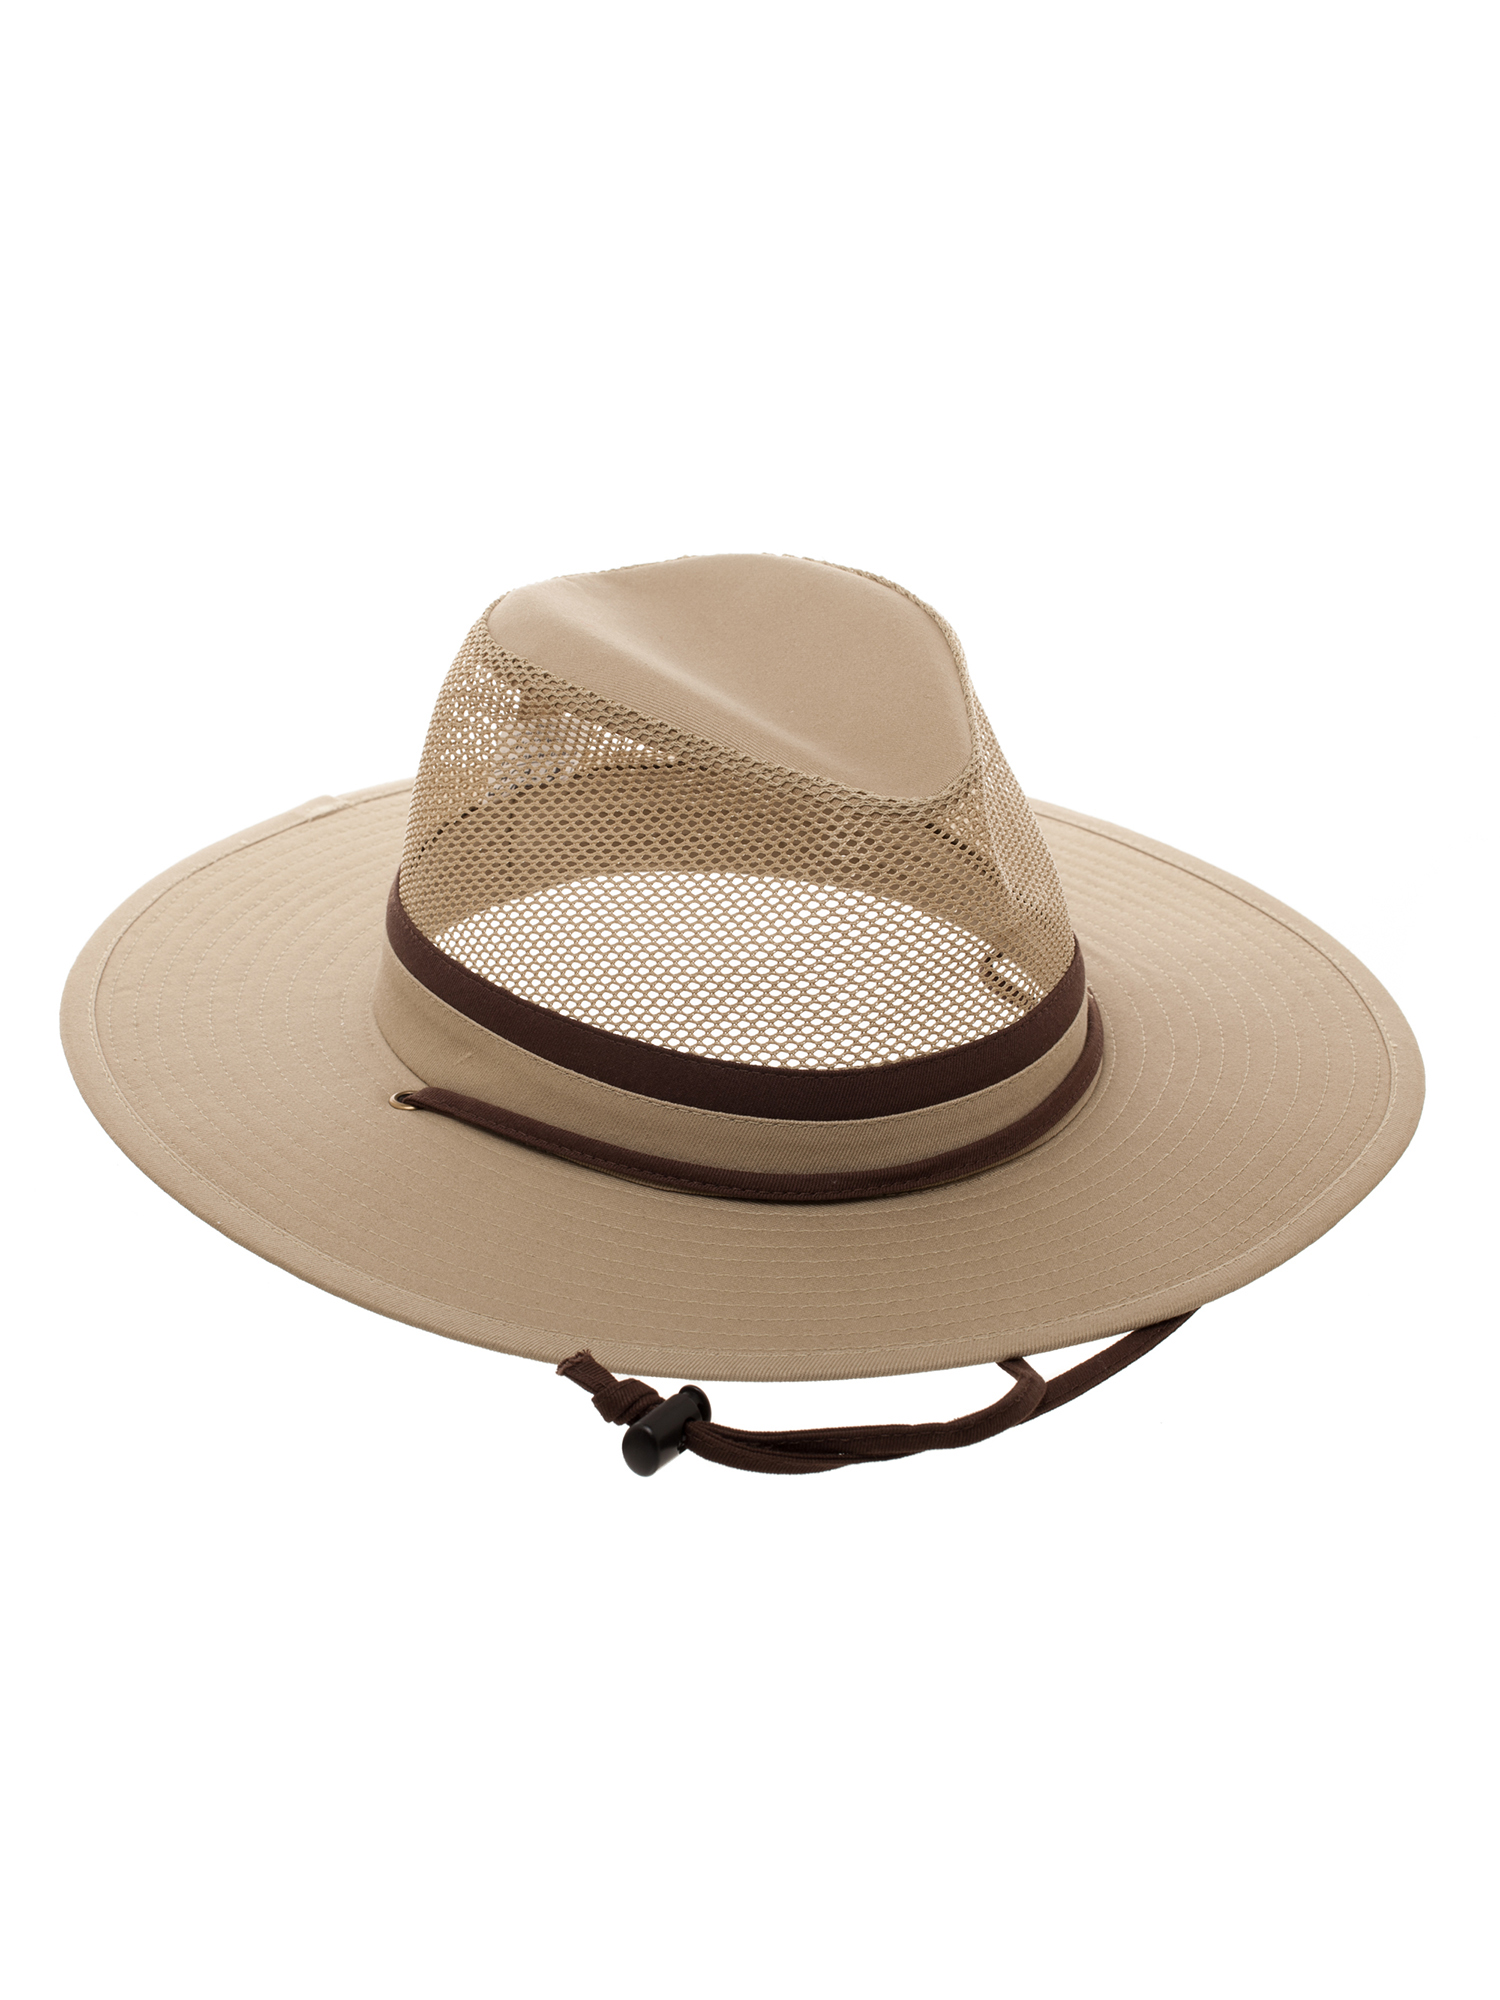 b08c6e98d45 Swiss Tech - Swiss Tech Men s Fitted Khaki Safari Cap With Mesh Crown -  Walmart.com